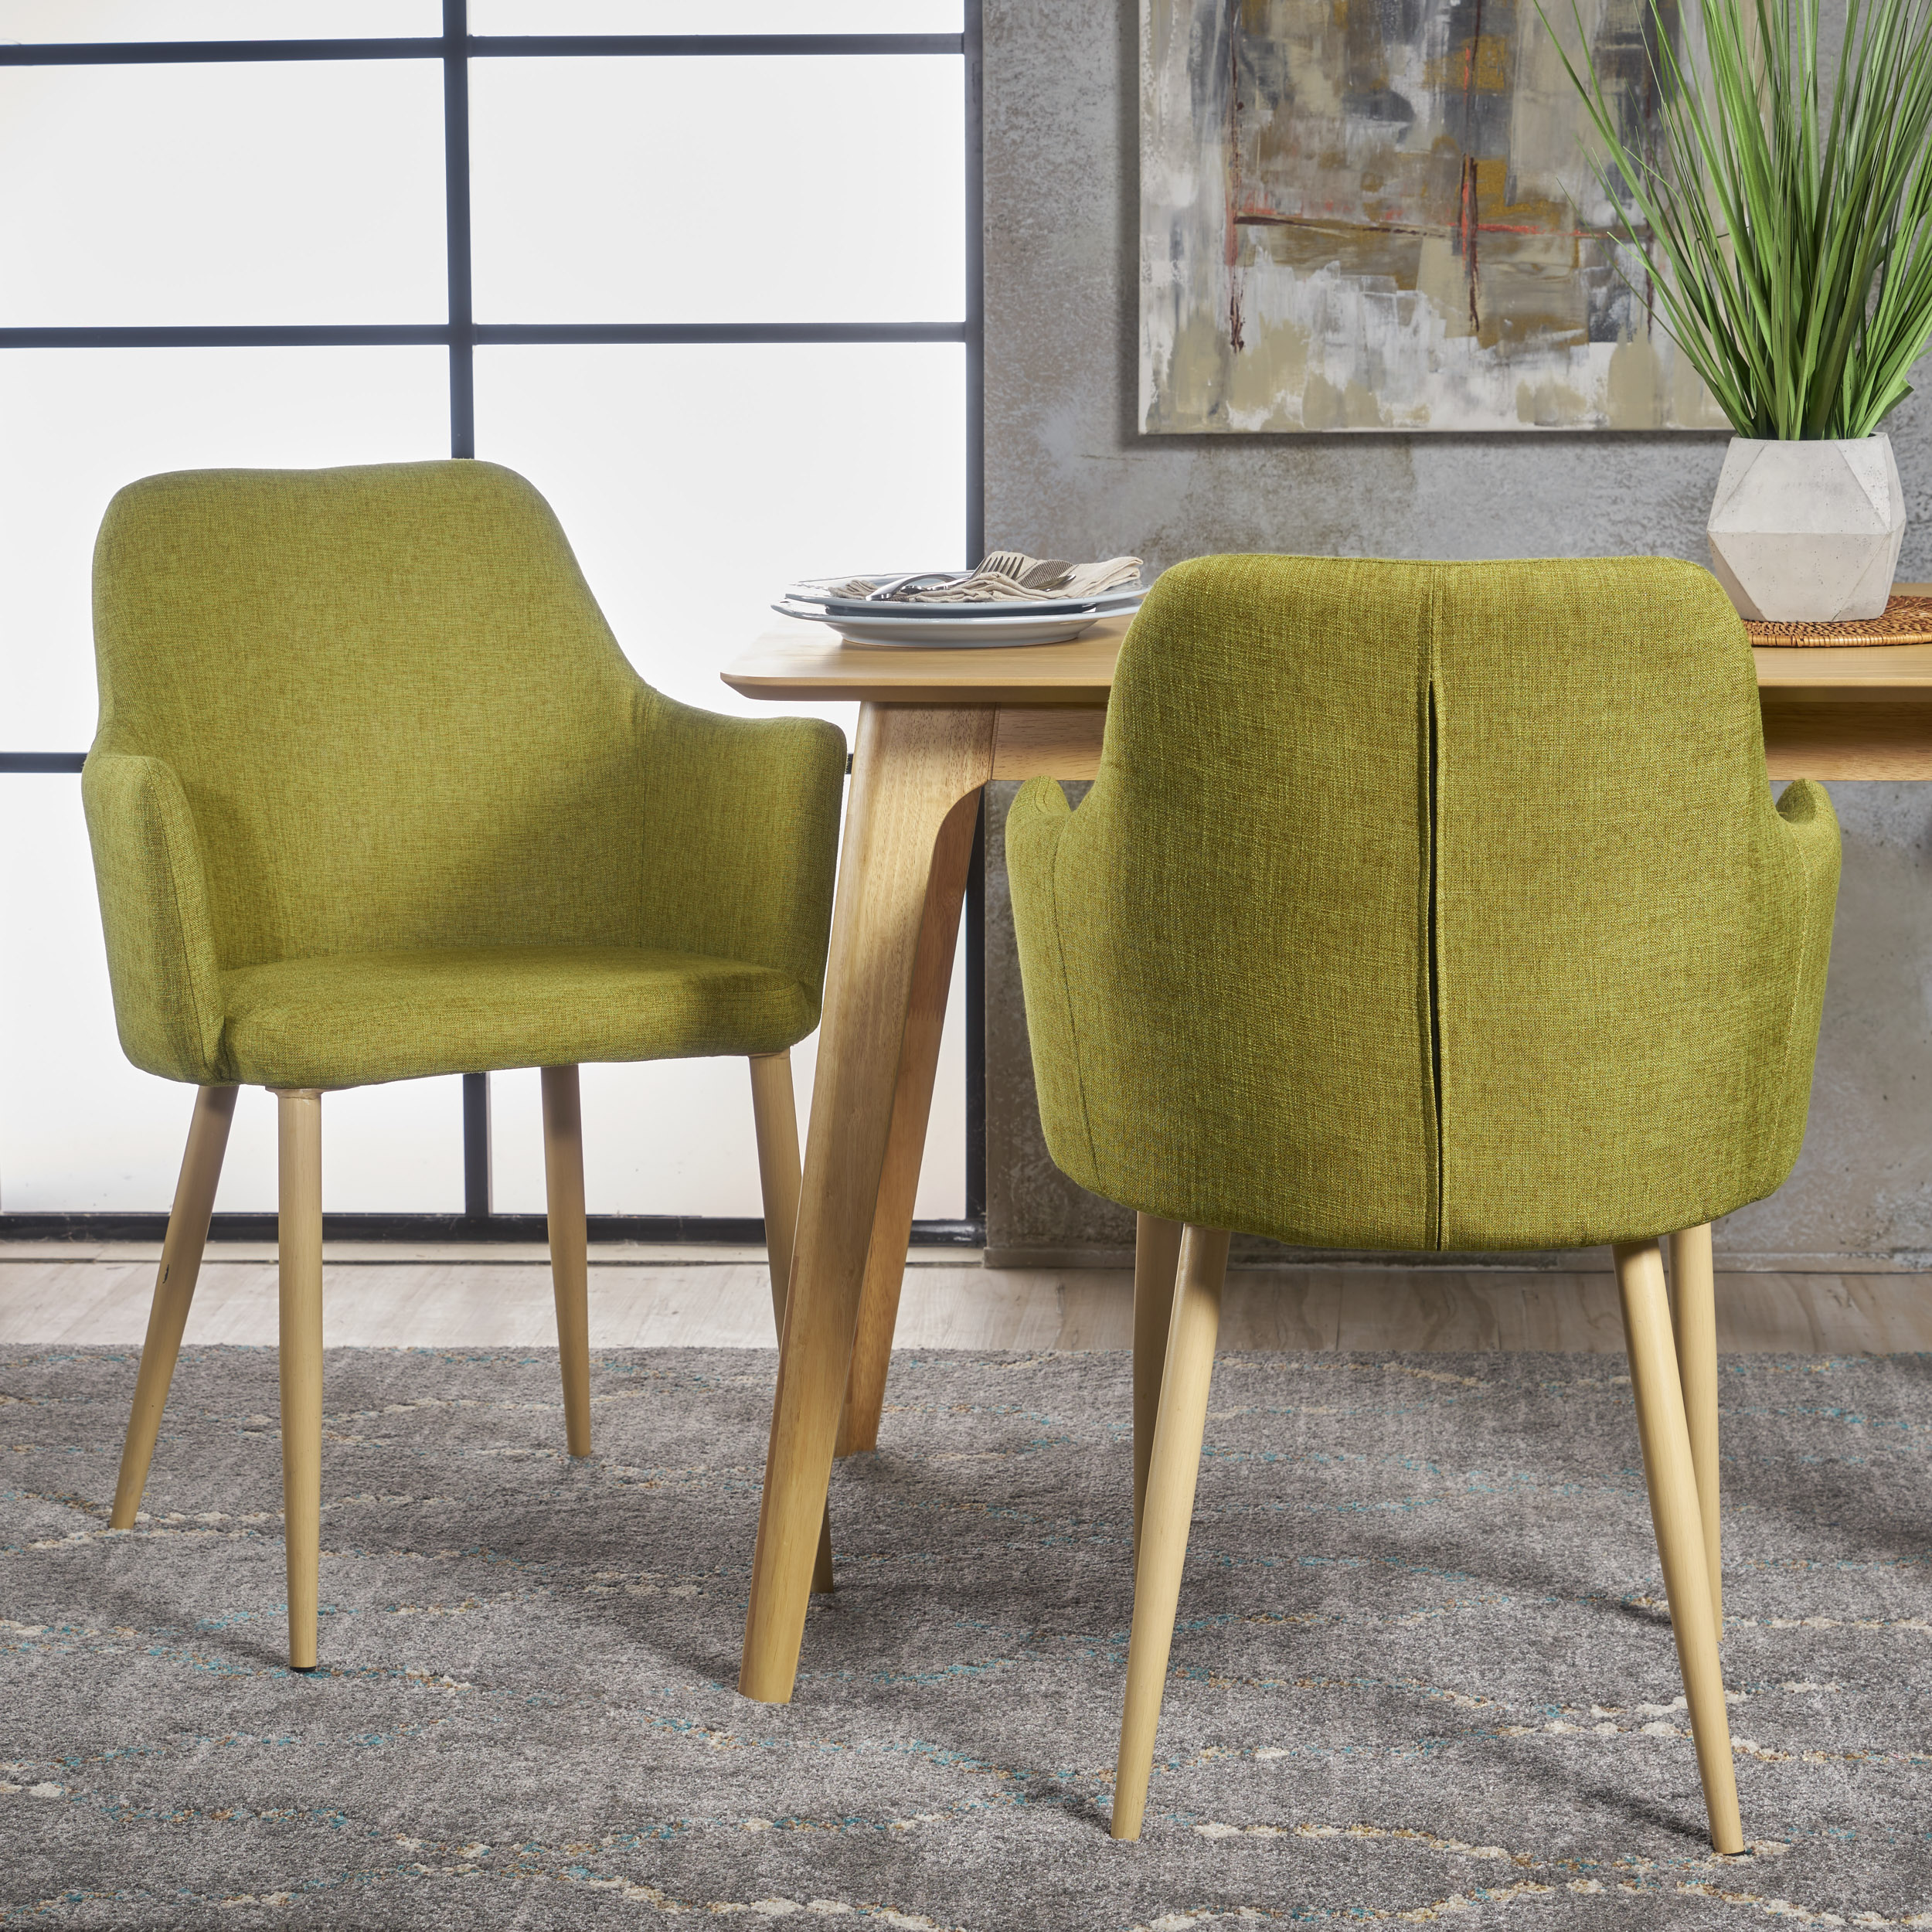 dining chairs fabric room chair covers dunelm noble house nina mid century green set of 2 walmart com